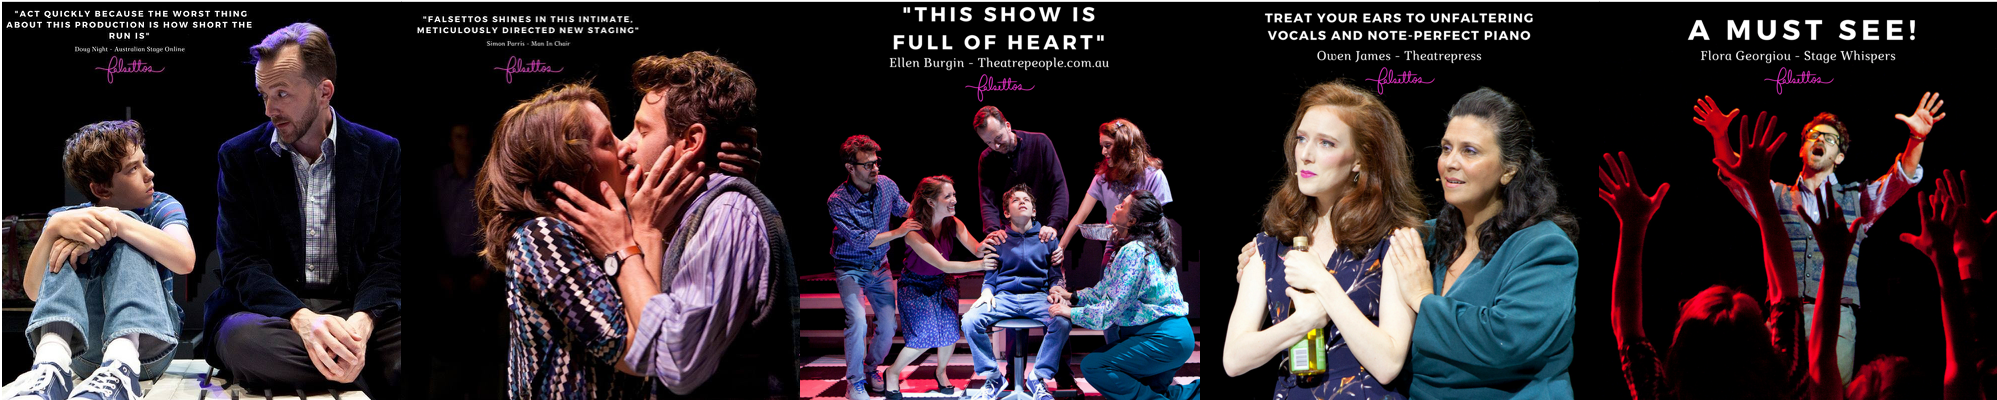 """Wonderful reviews for StageArt's February 2018 production of """"FALSETTOS"""" directed by Tyran Parke and musically directed by David Butler"""